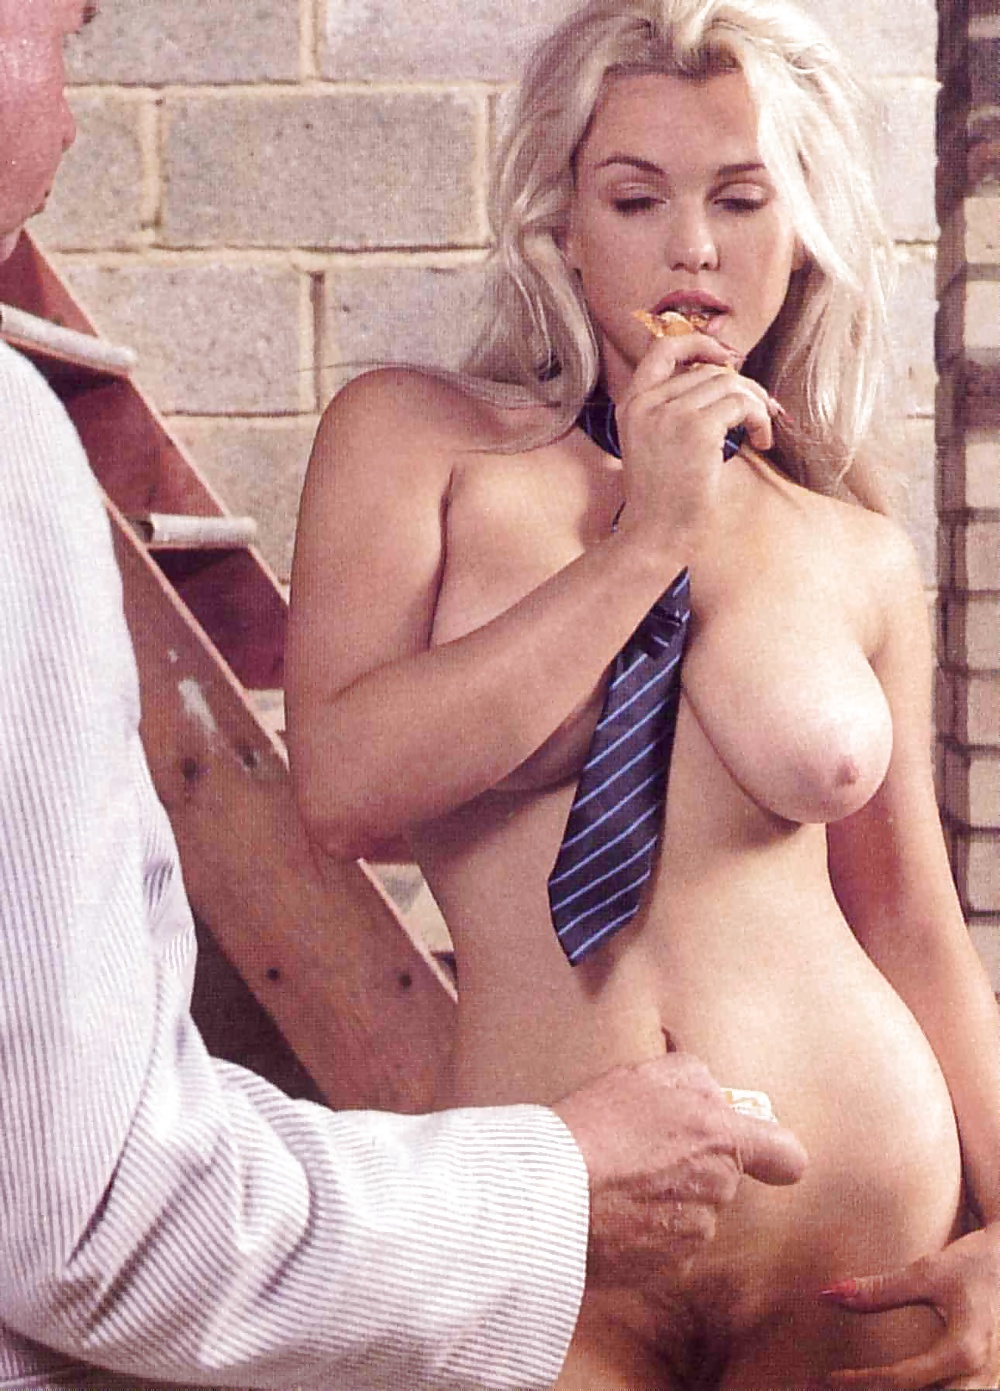 Adult archive Pornstar comma sutra